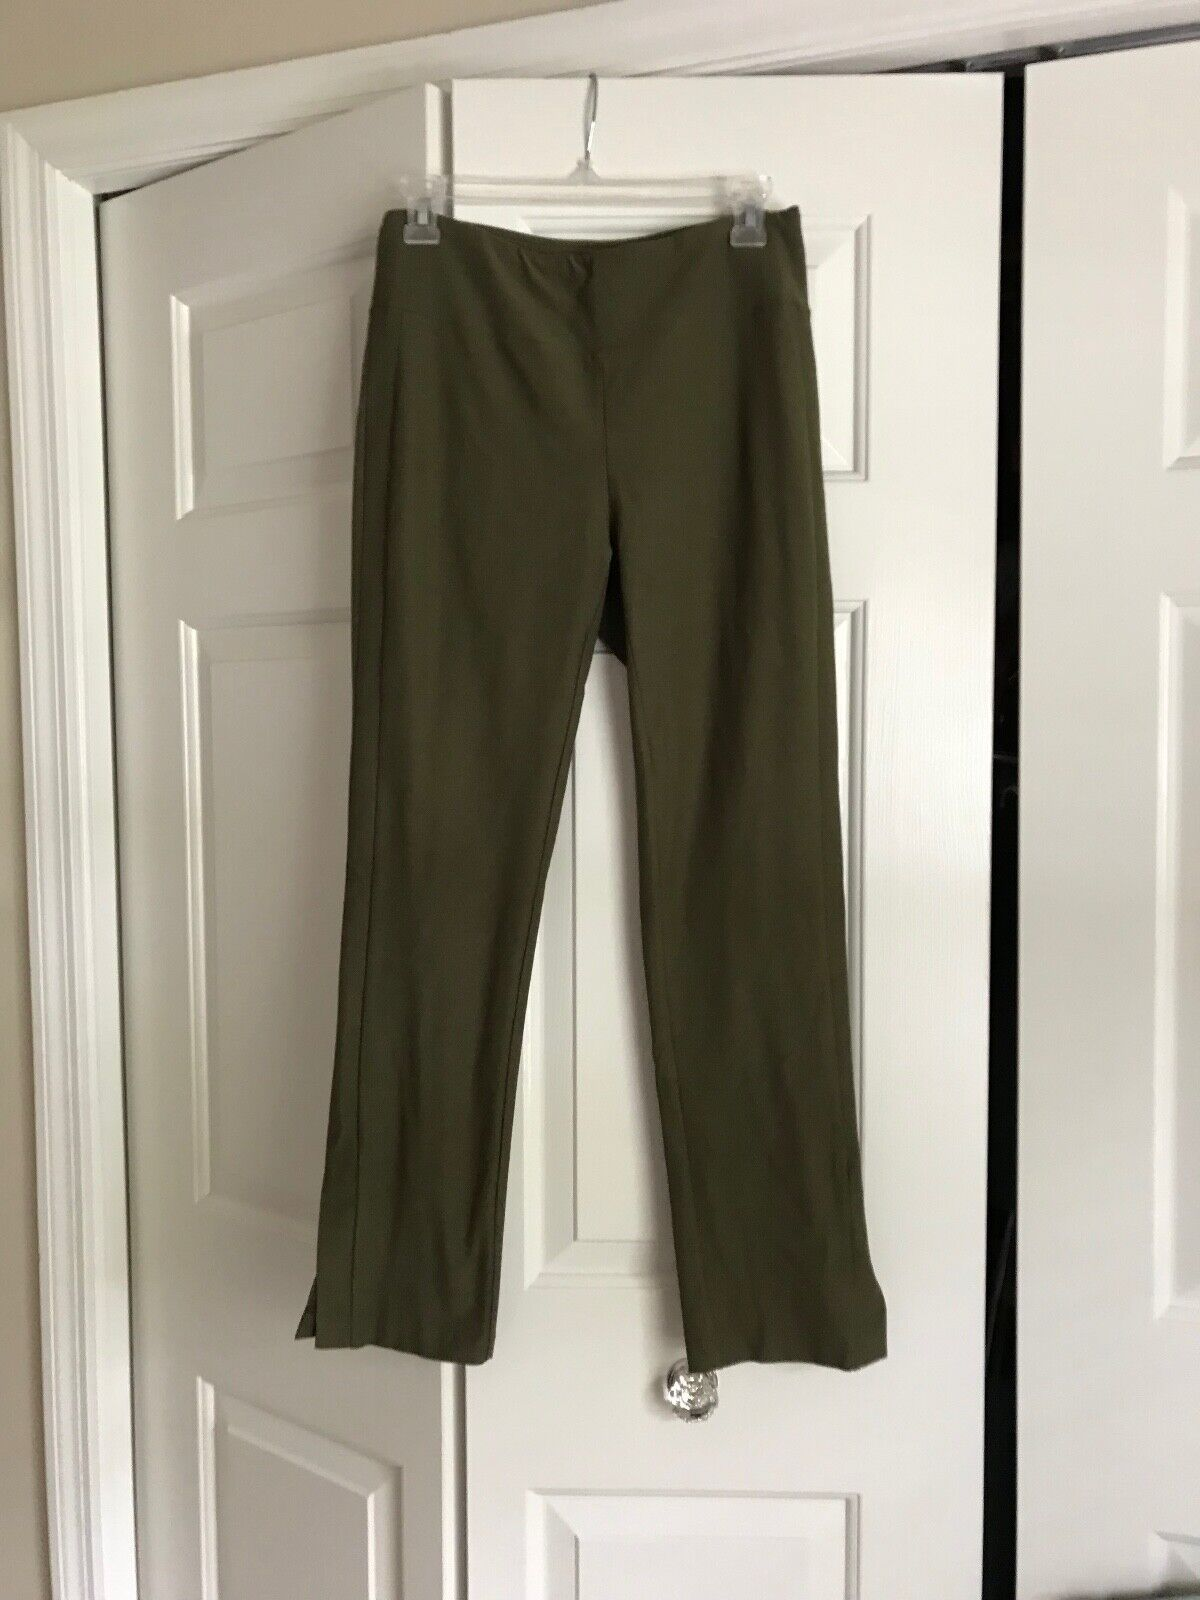 NWT Eileen Fisher Washable Stretch Crepe Green Pants W Slit At Ankle in Size XS